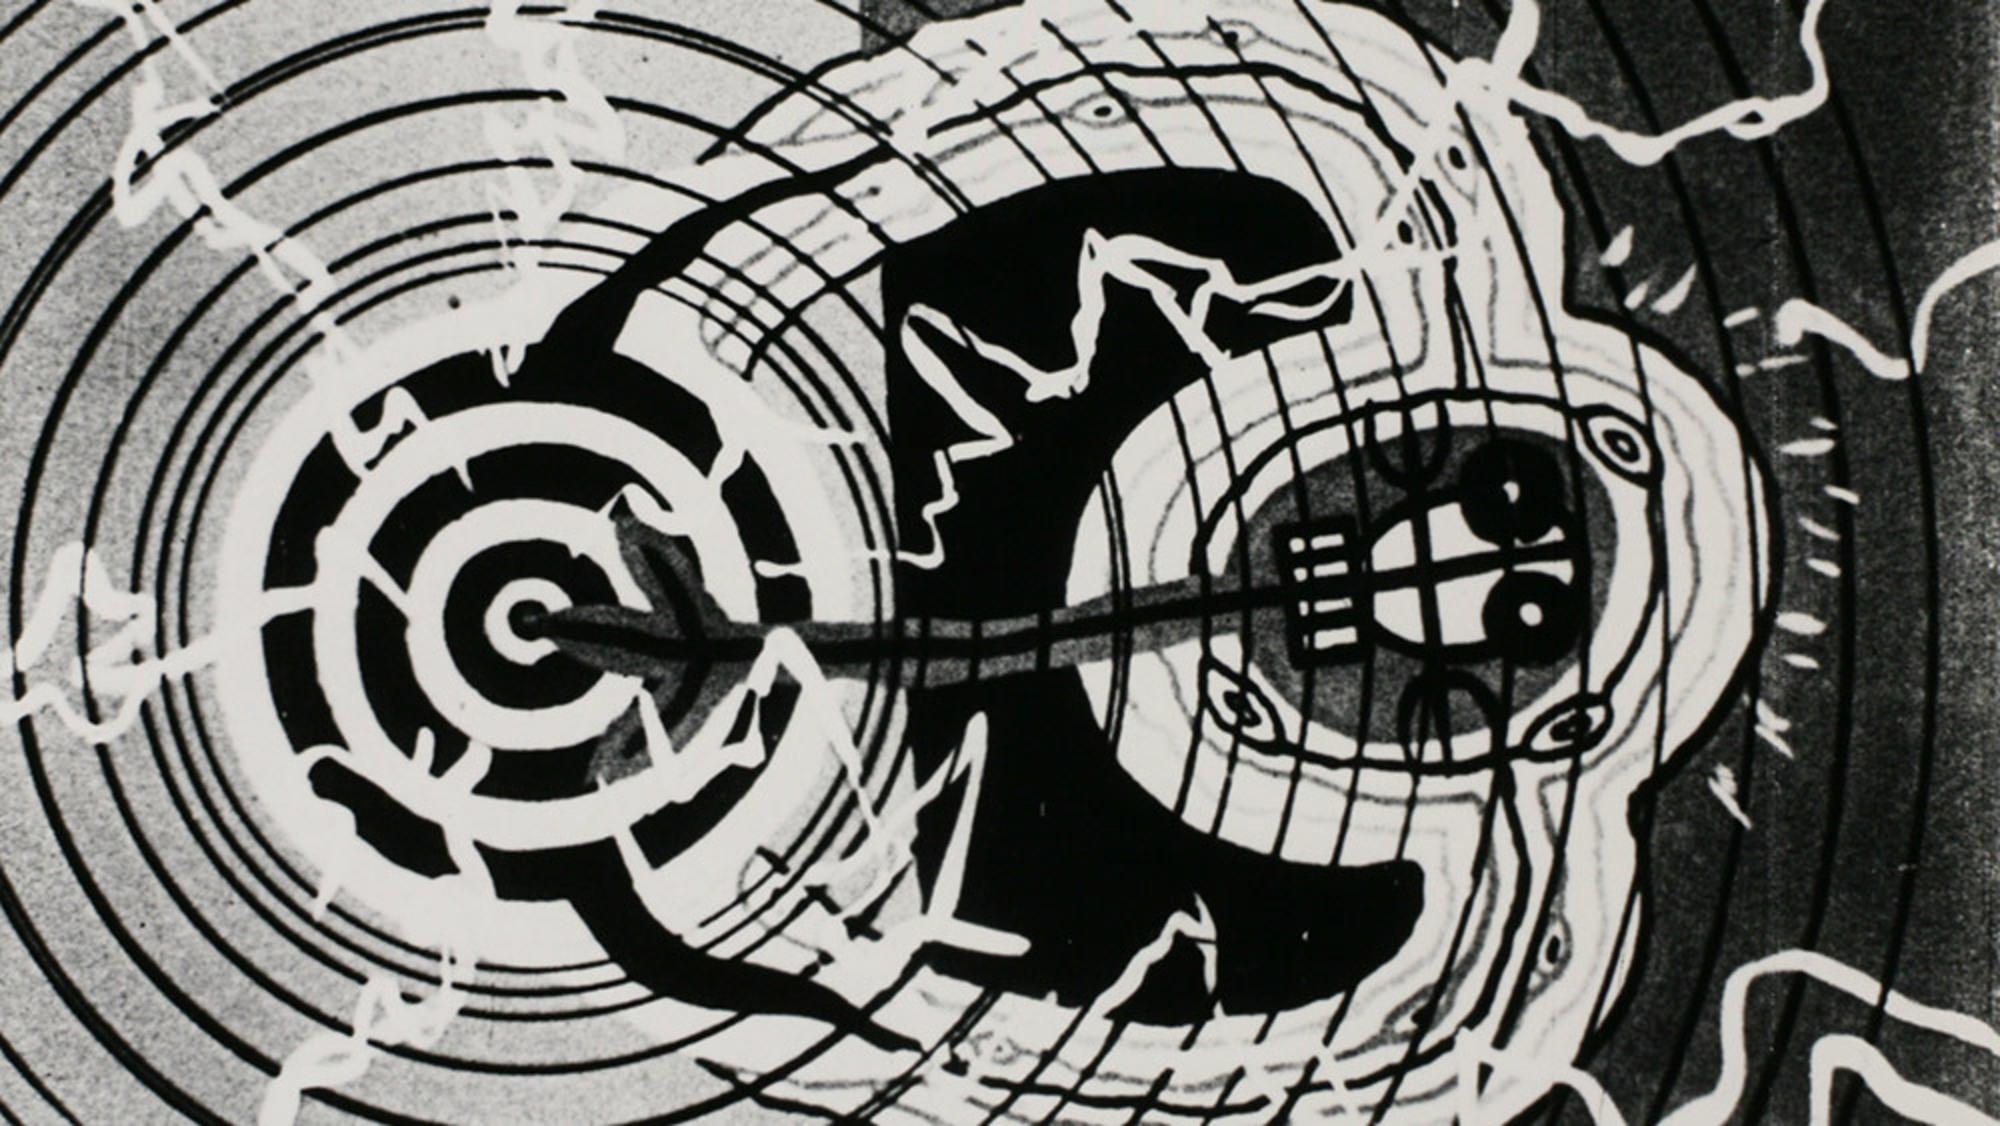 Life emerges, evolves and fights for supremacy in this 1929 avant-garde classic